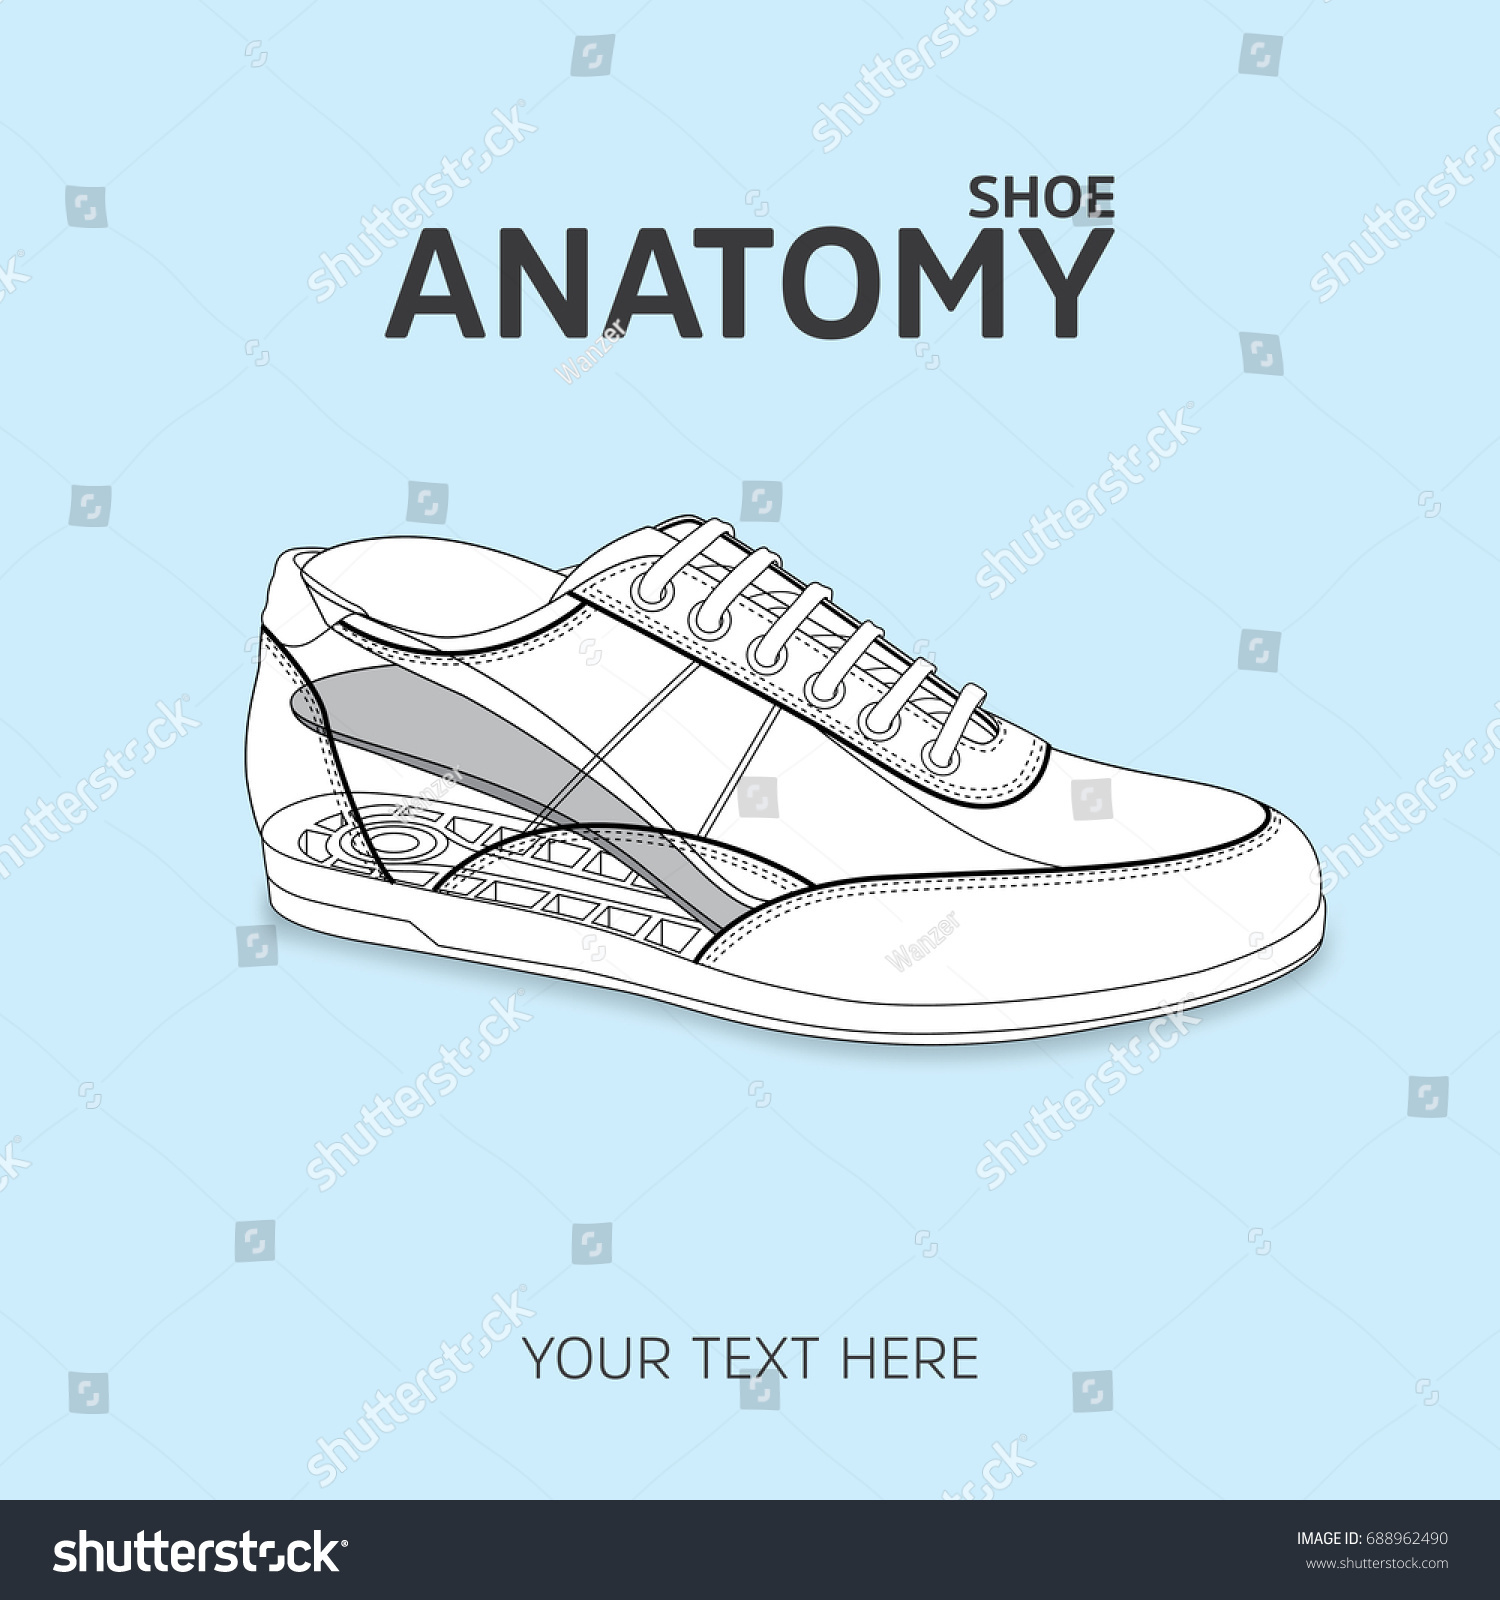 Isolated Shoe Sketch Anatomy Shoe Stock Vector 688962490 Shutterstock